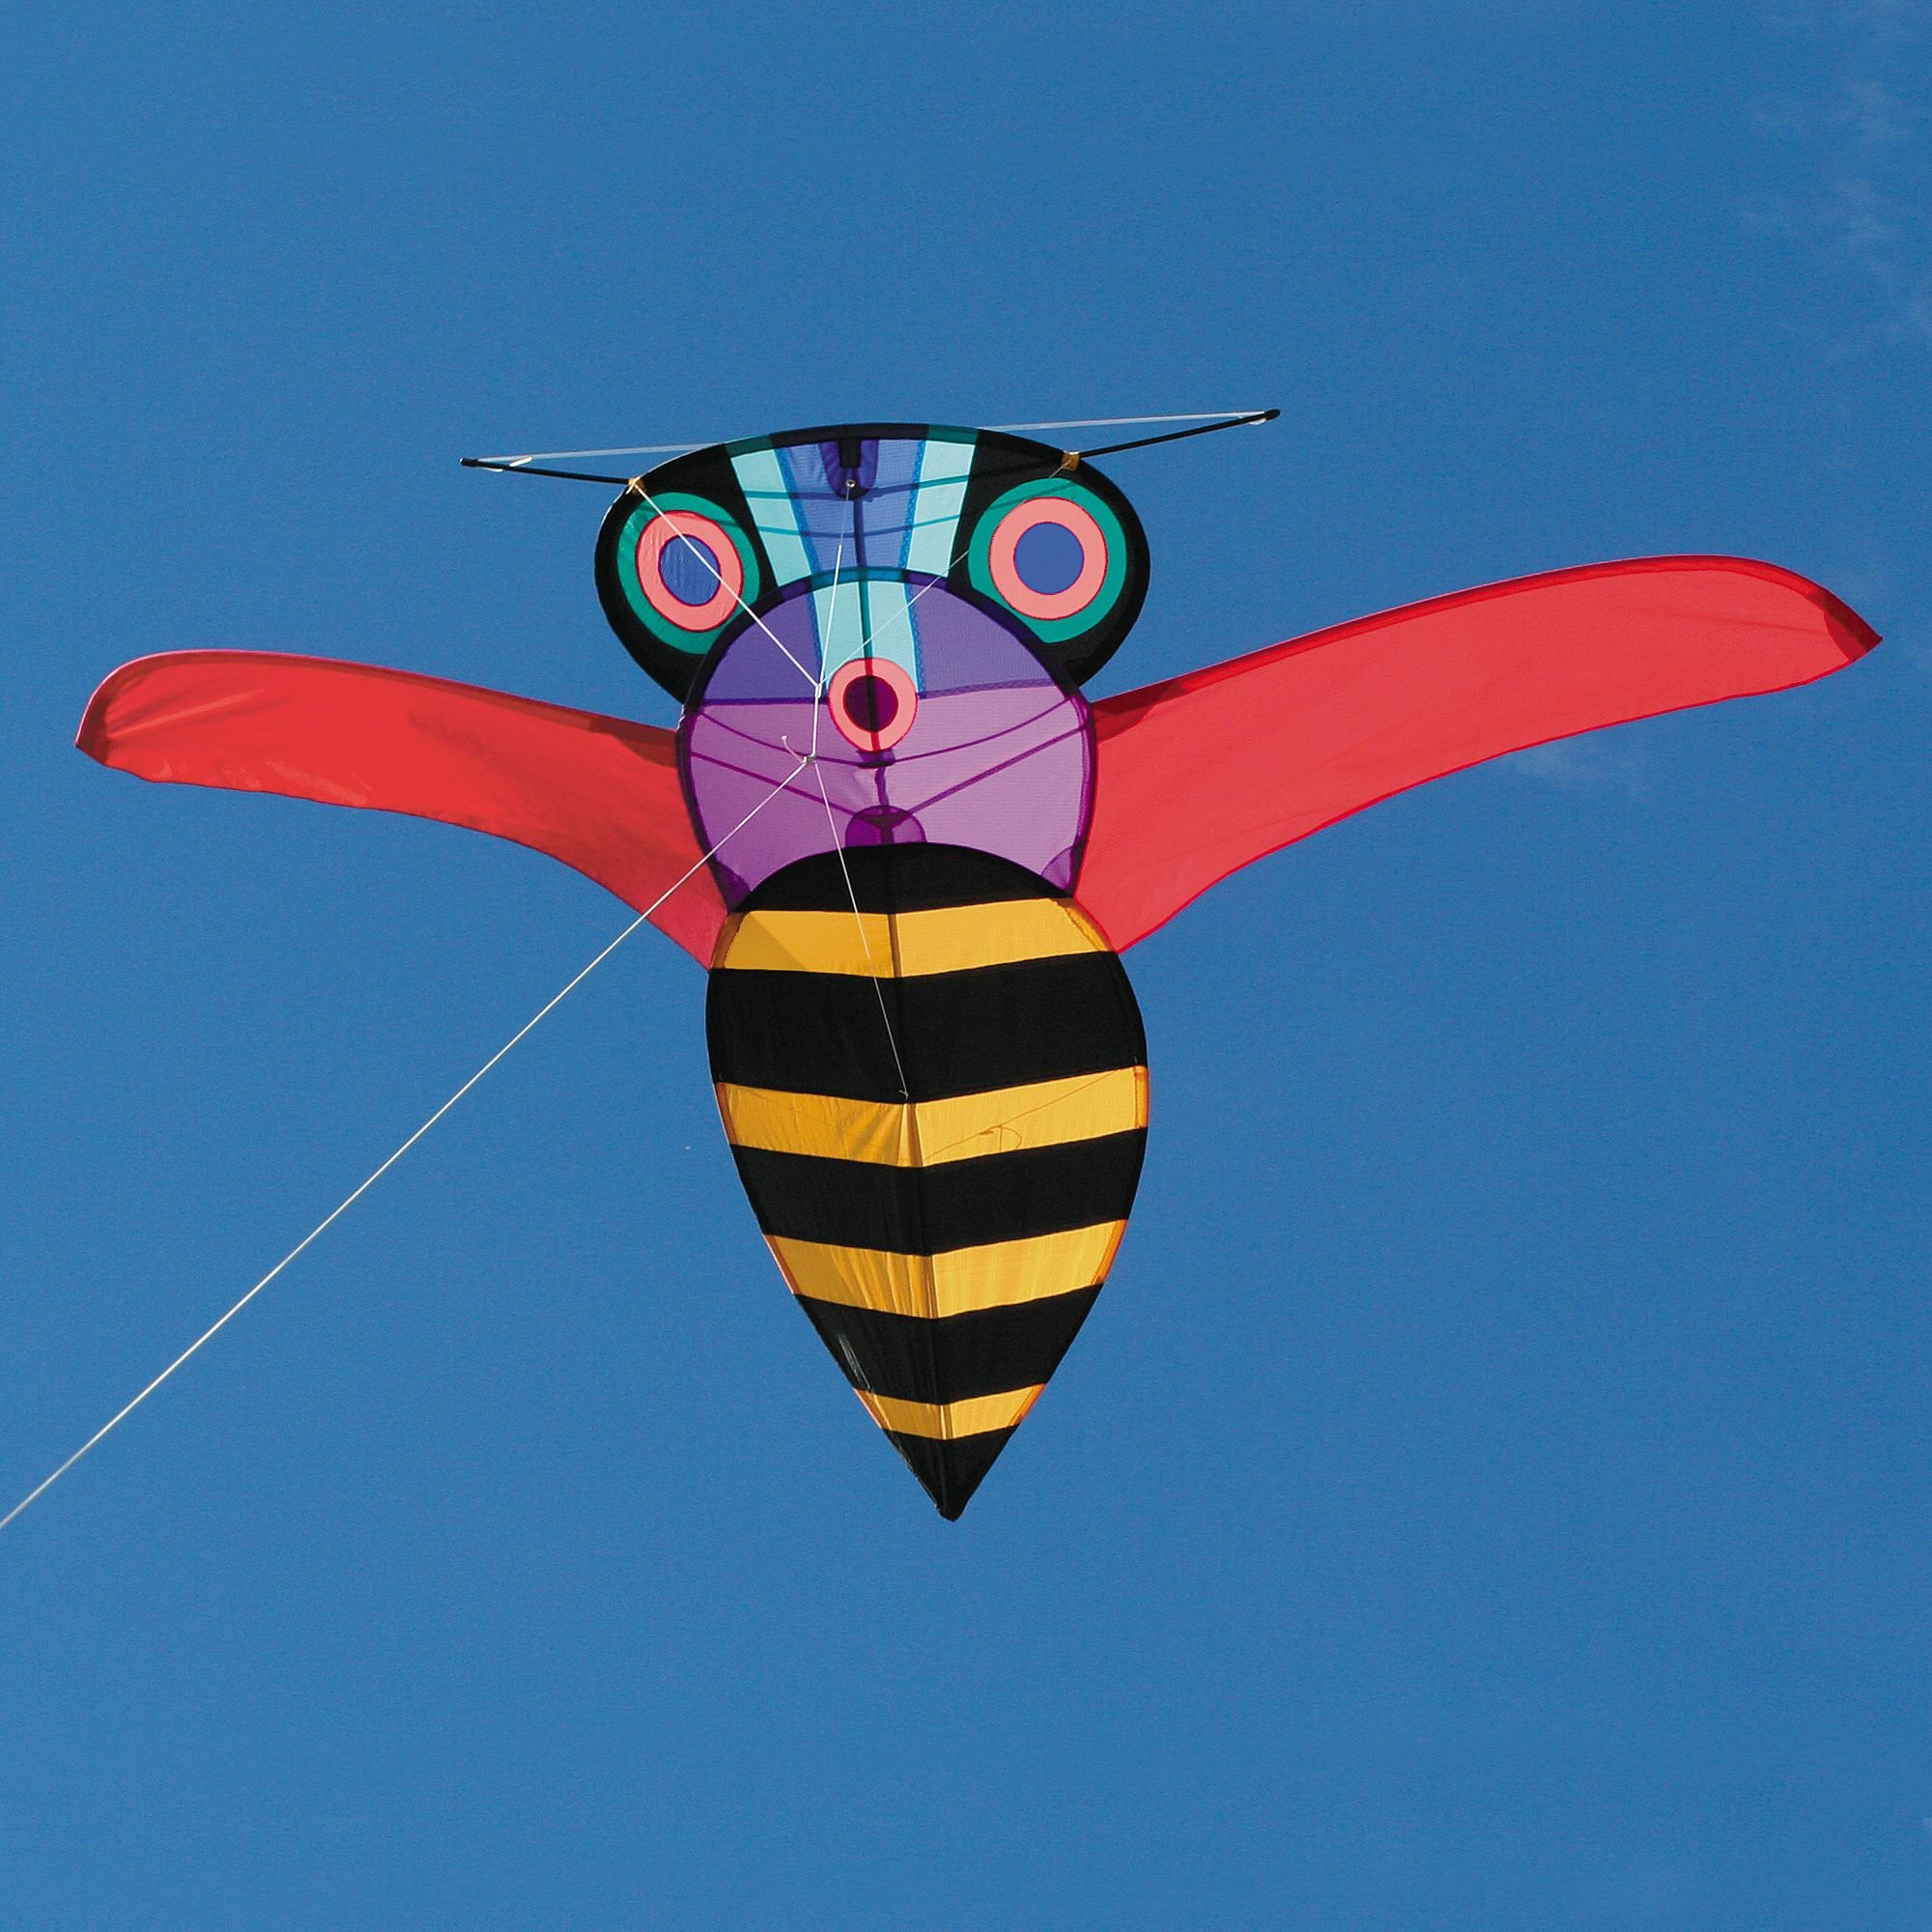 George Peters' Buzz Bee Kite by Into The Wind